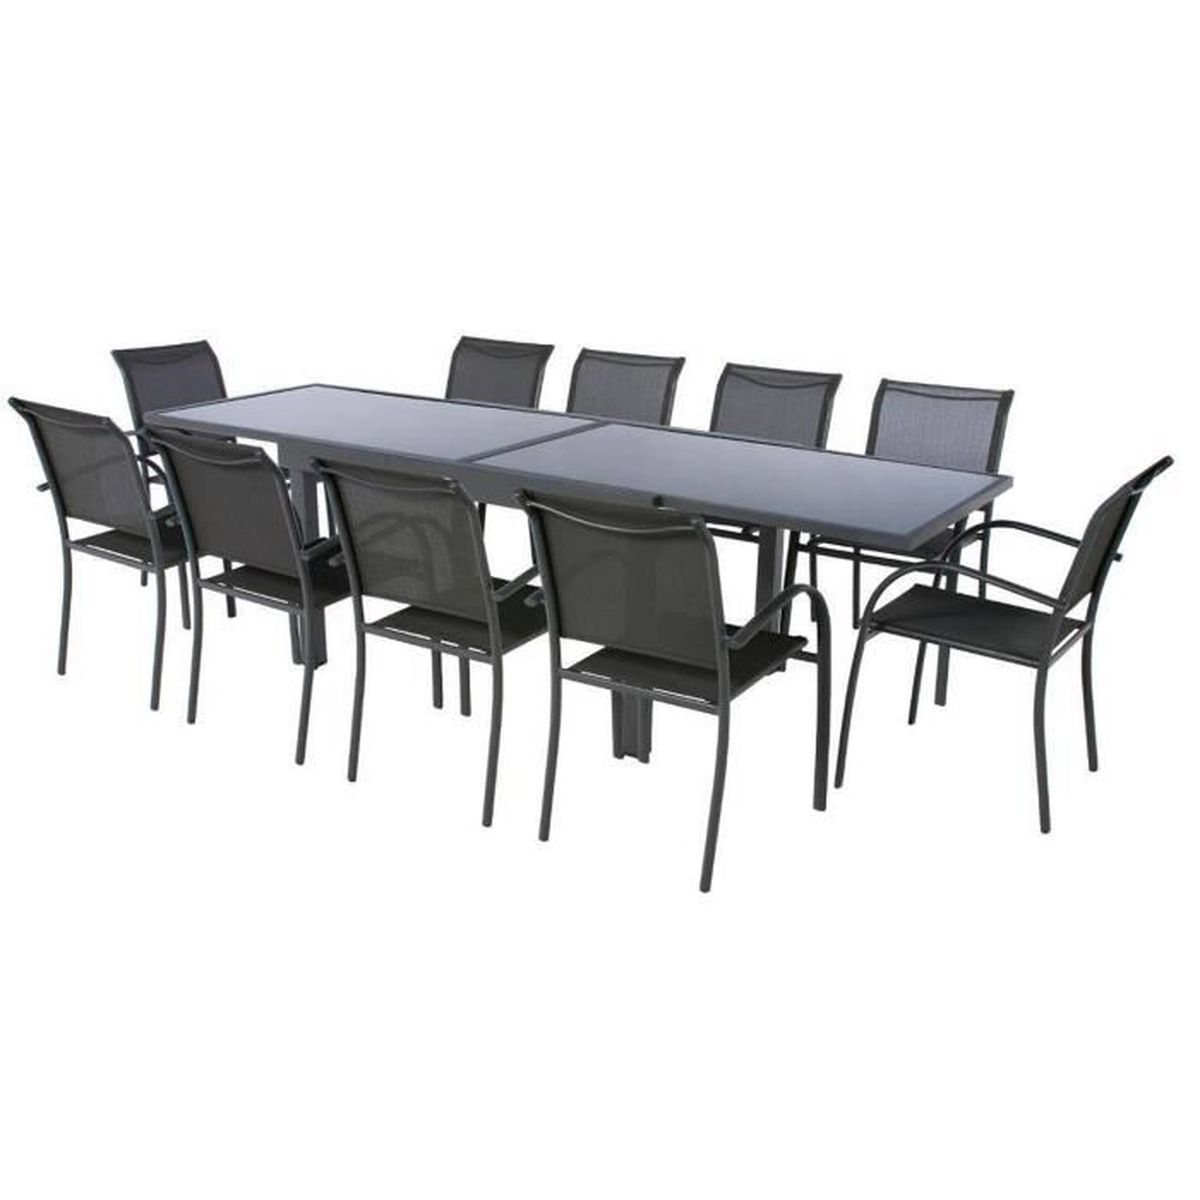 Table extensible en aluminium coloris anthracite graphite for Table extensible 2 a 8 personnes